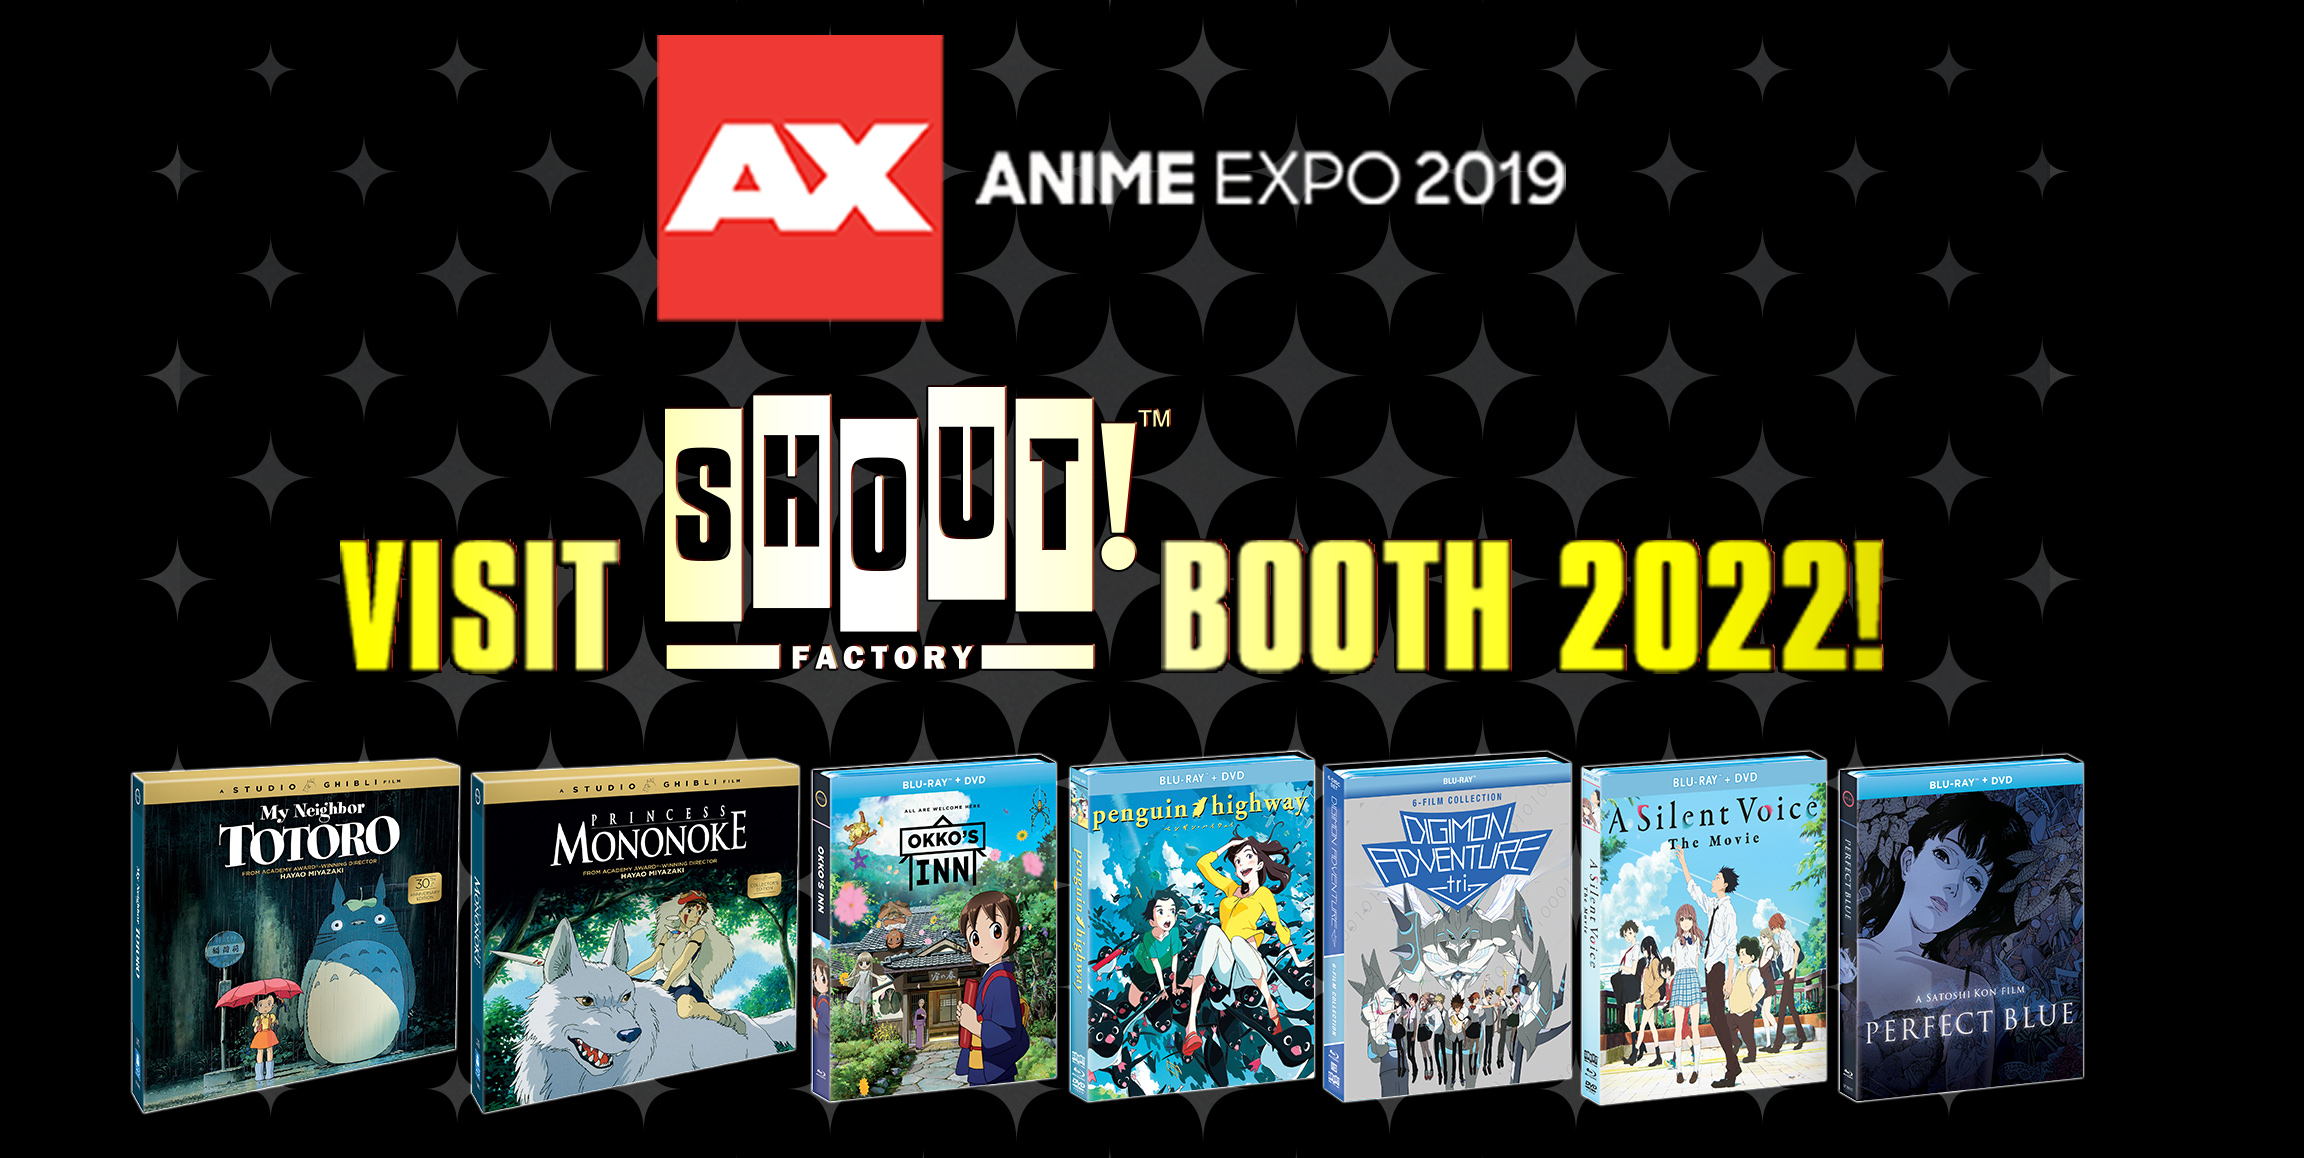 Shout! Factory Unveils Its Anime Expo 2019 Lineup, Featuring World Renowned Anime Brands, Popular Home Entertainment Products And Interactive Fan Activities